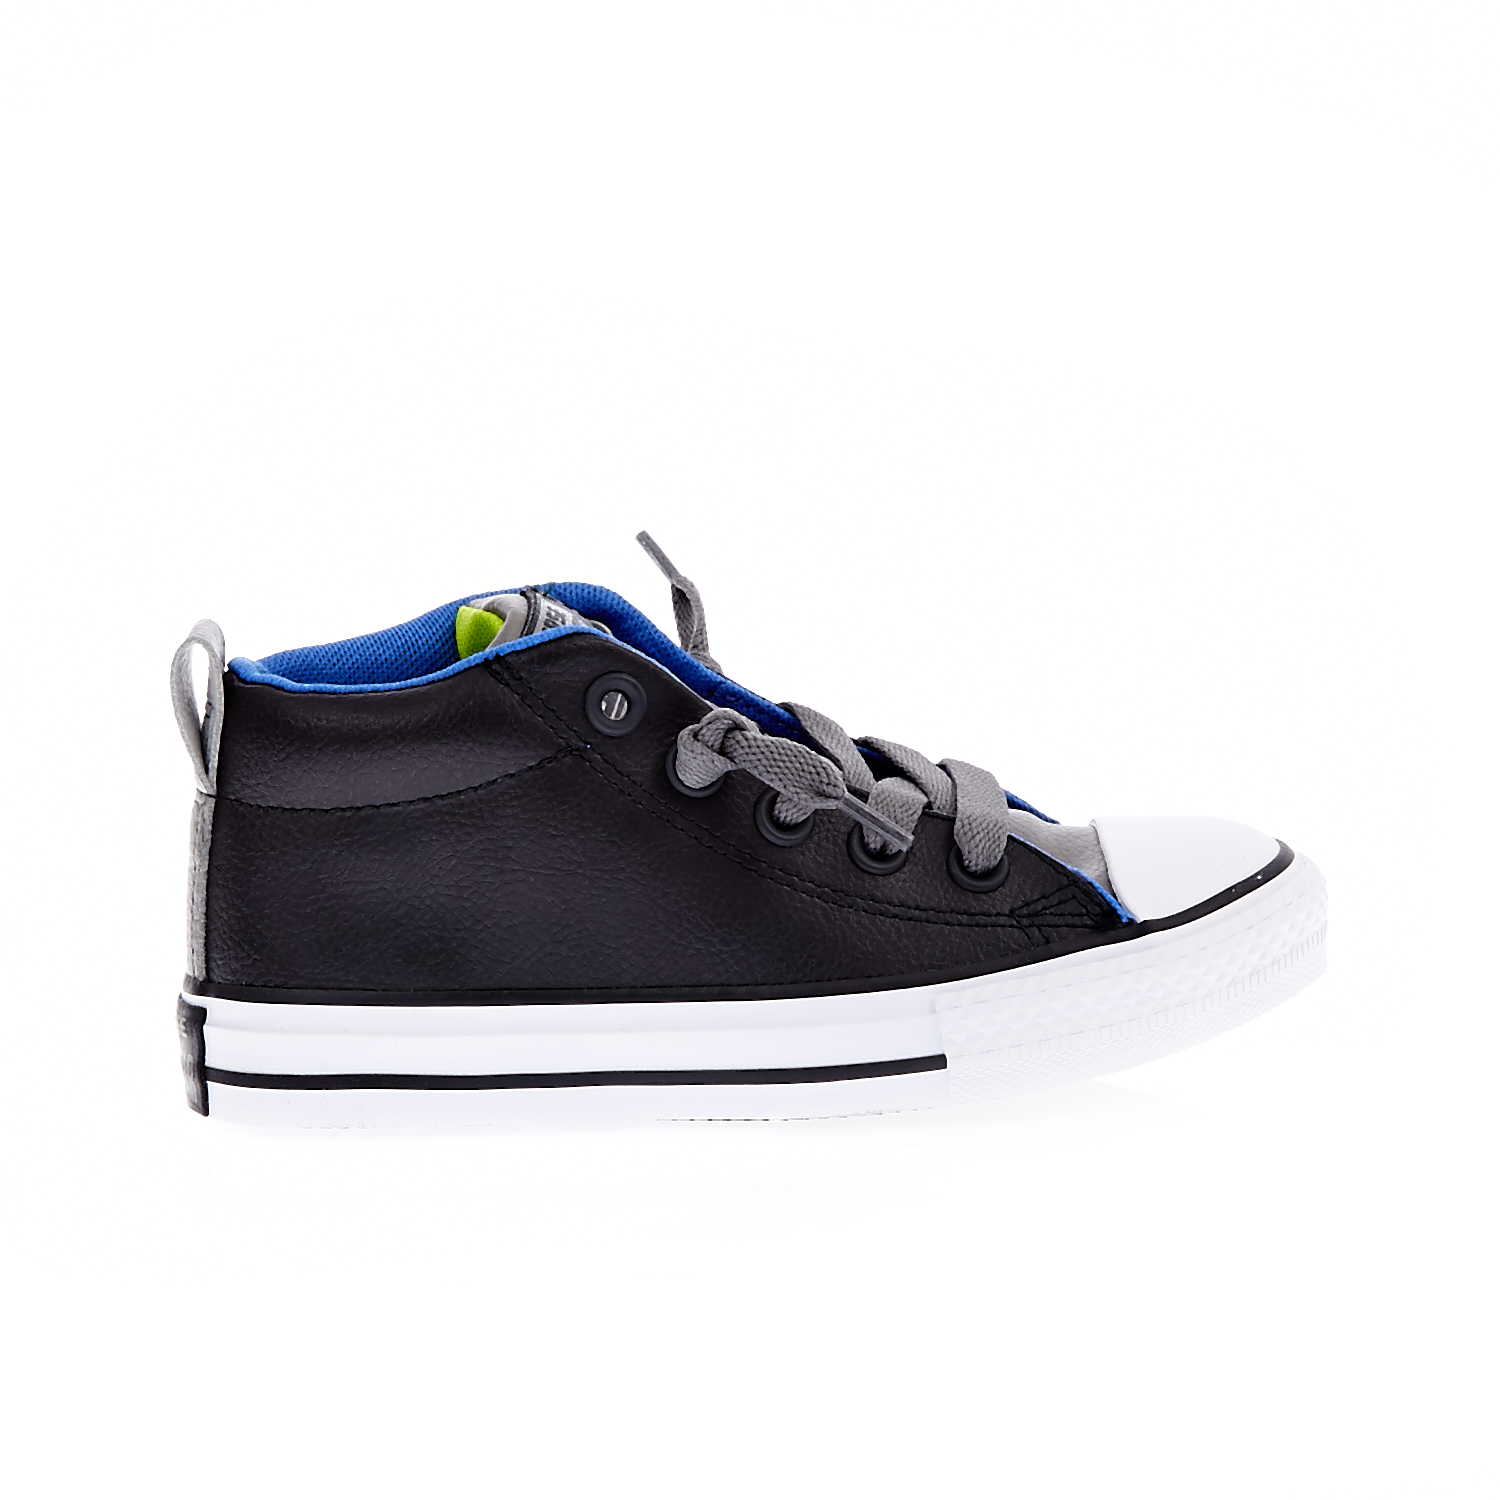 CONVERSE - Παιδικά Παπούτσια Chuck Taylor All Star Street M Ανθρακί-Μαύρα